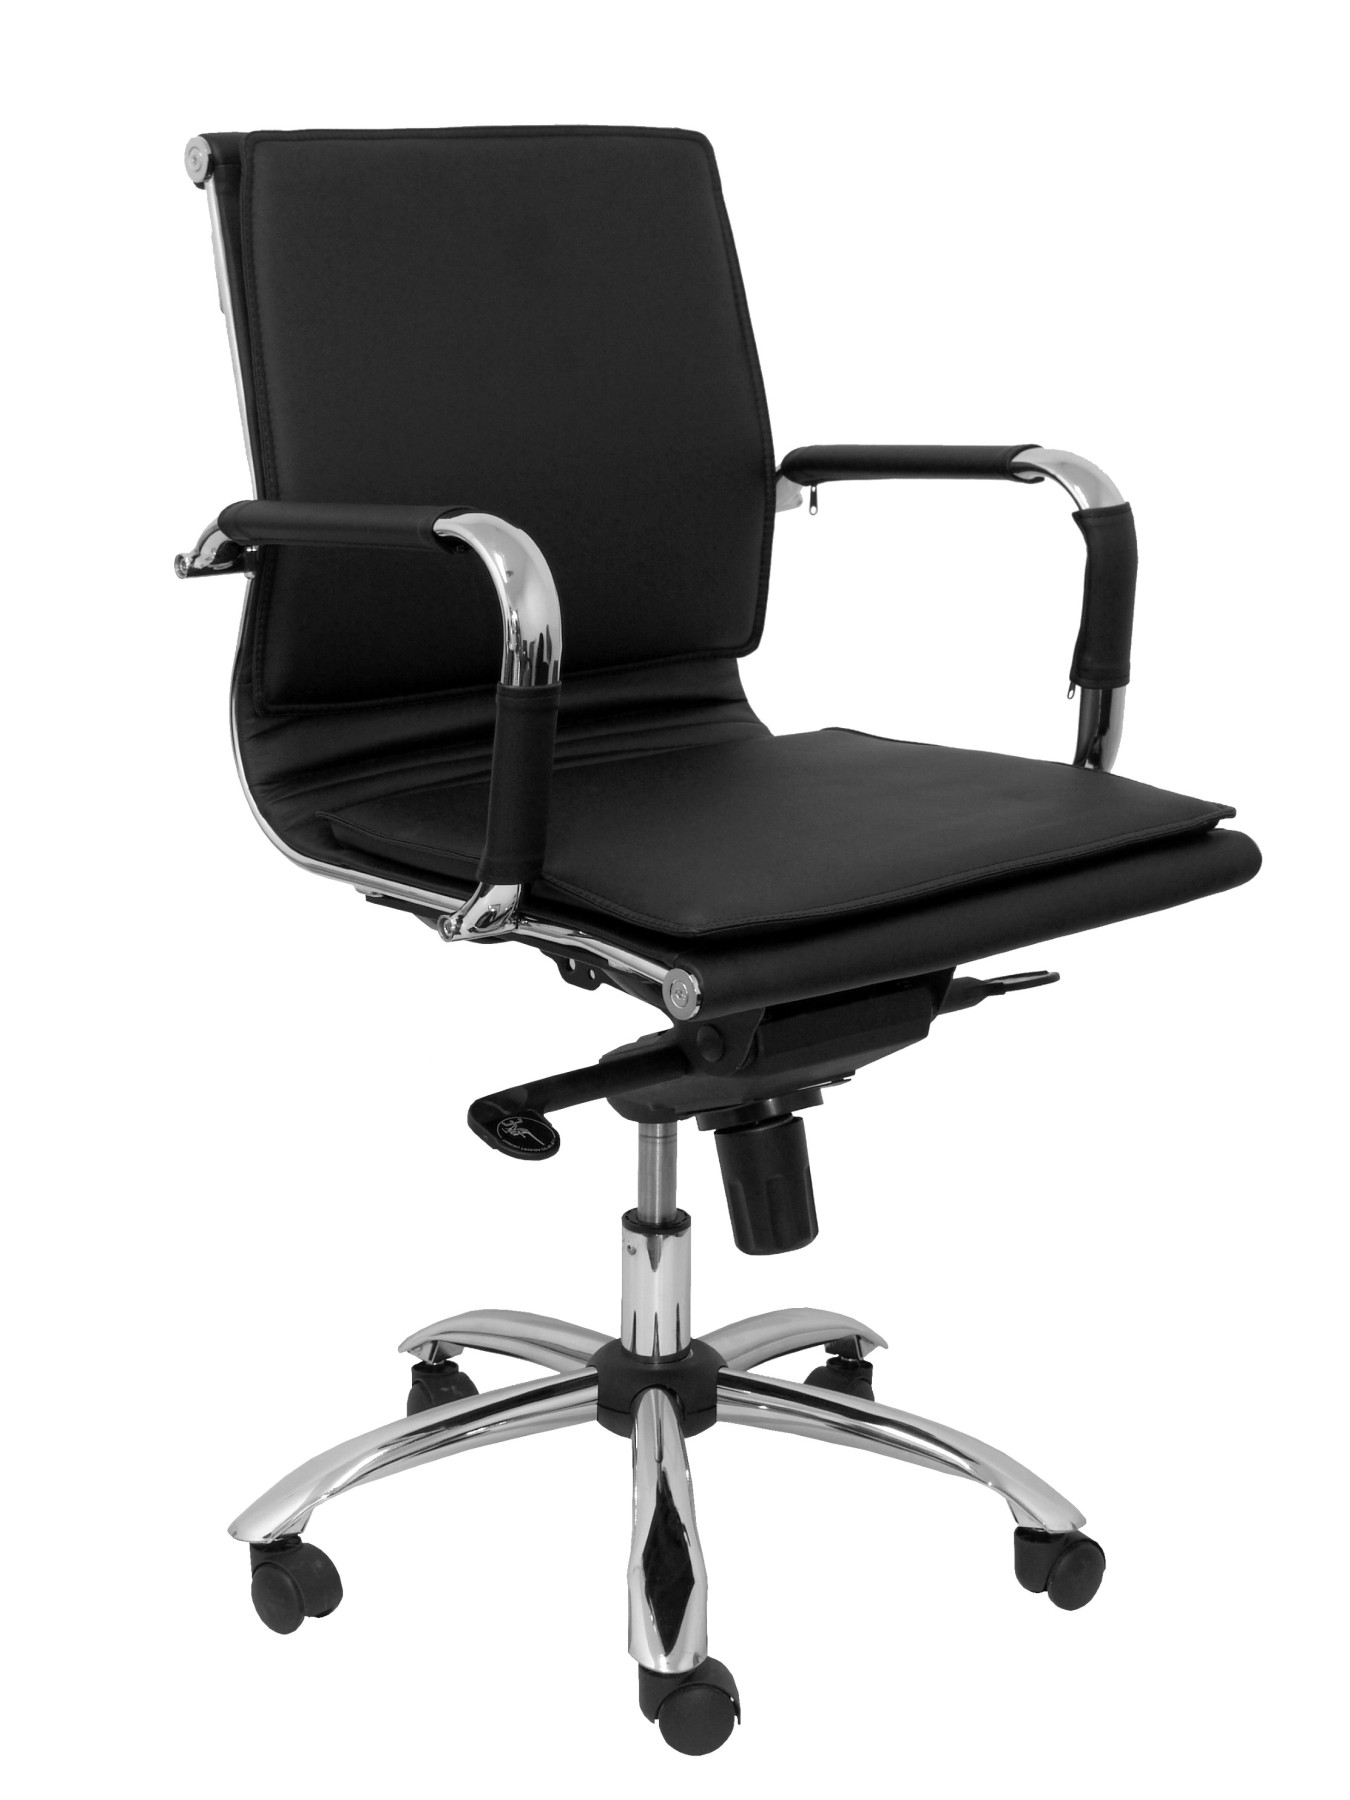 Office's Armchair Ergonomic Confidante/waiting With House Mechanism Tilting Multi Position And Dimmable In High Altitude Up Seat